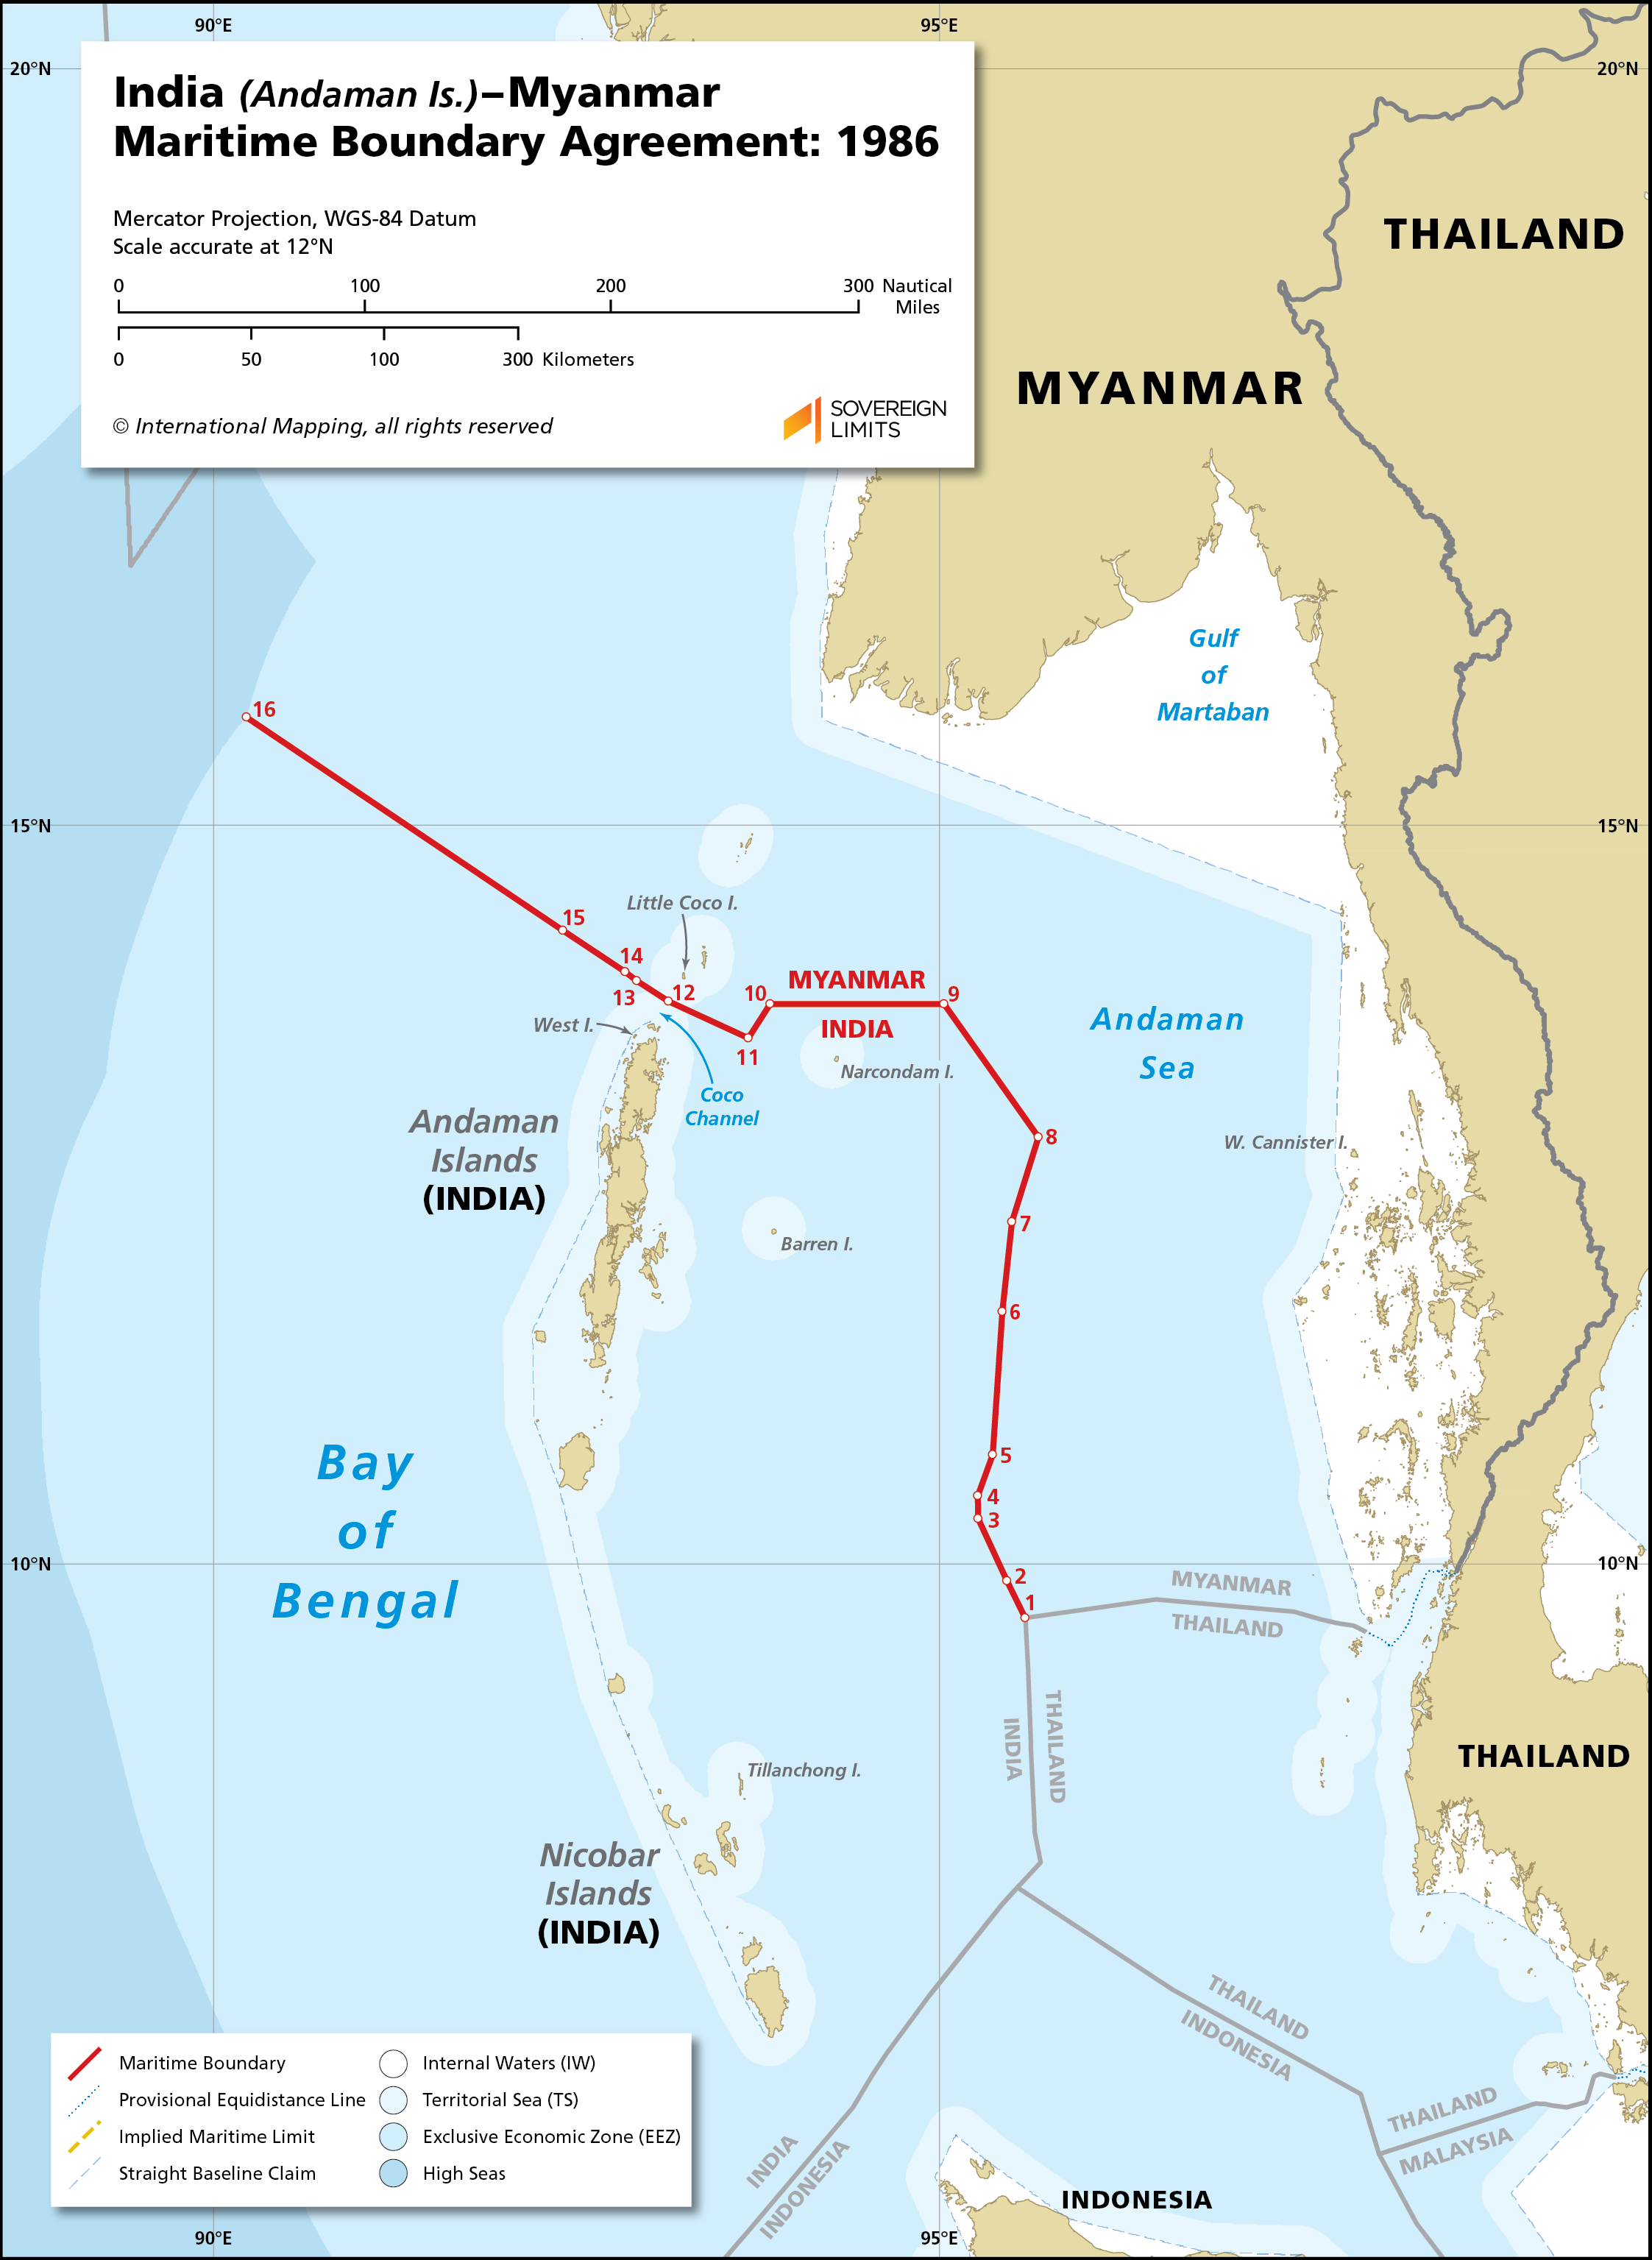 Map showing the maritime boundary between India and Myanmar